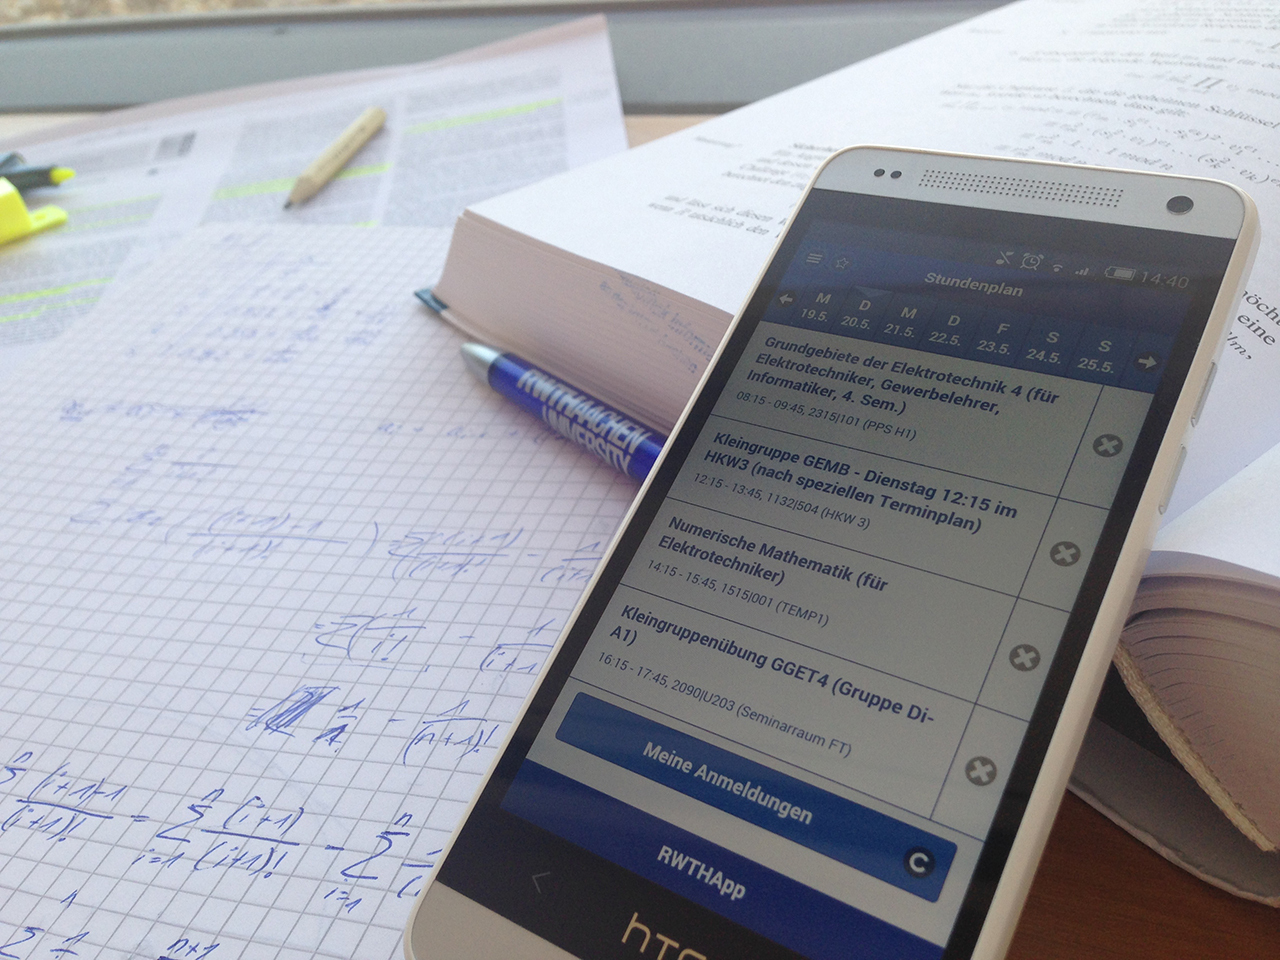 Photo of a mobile pphone with RWTH App and a book